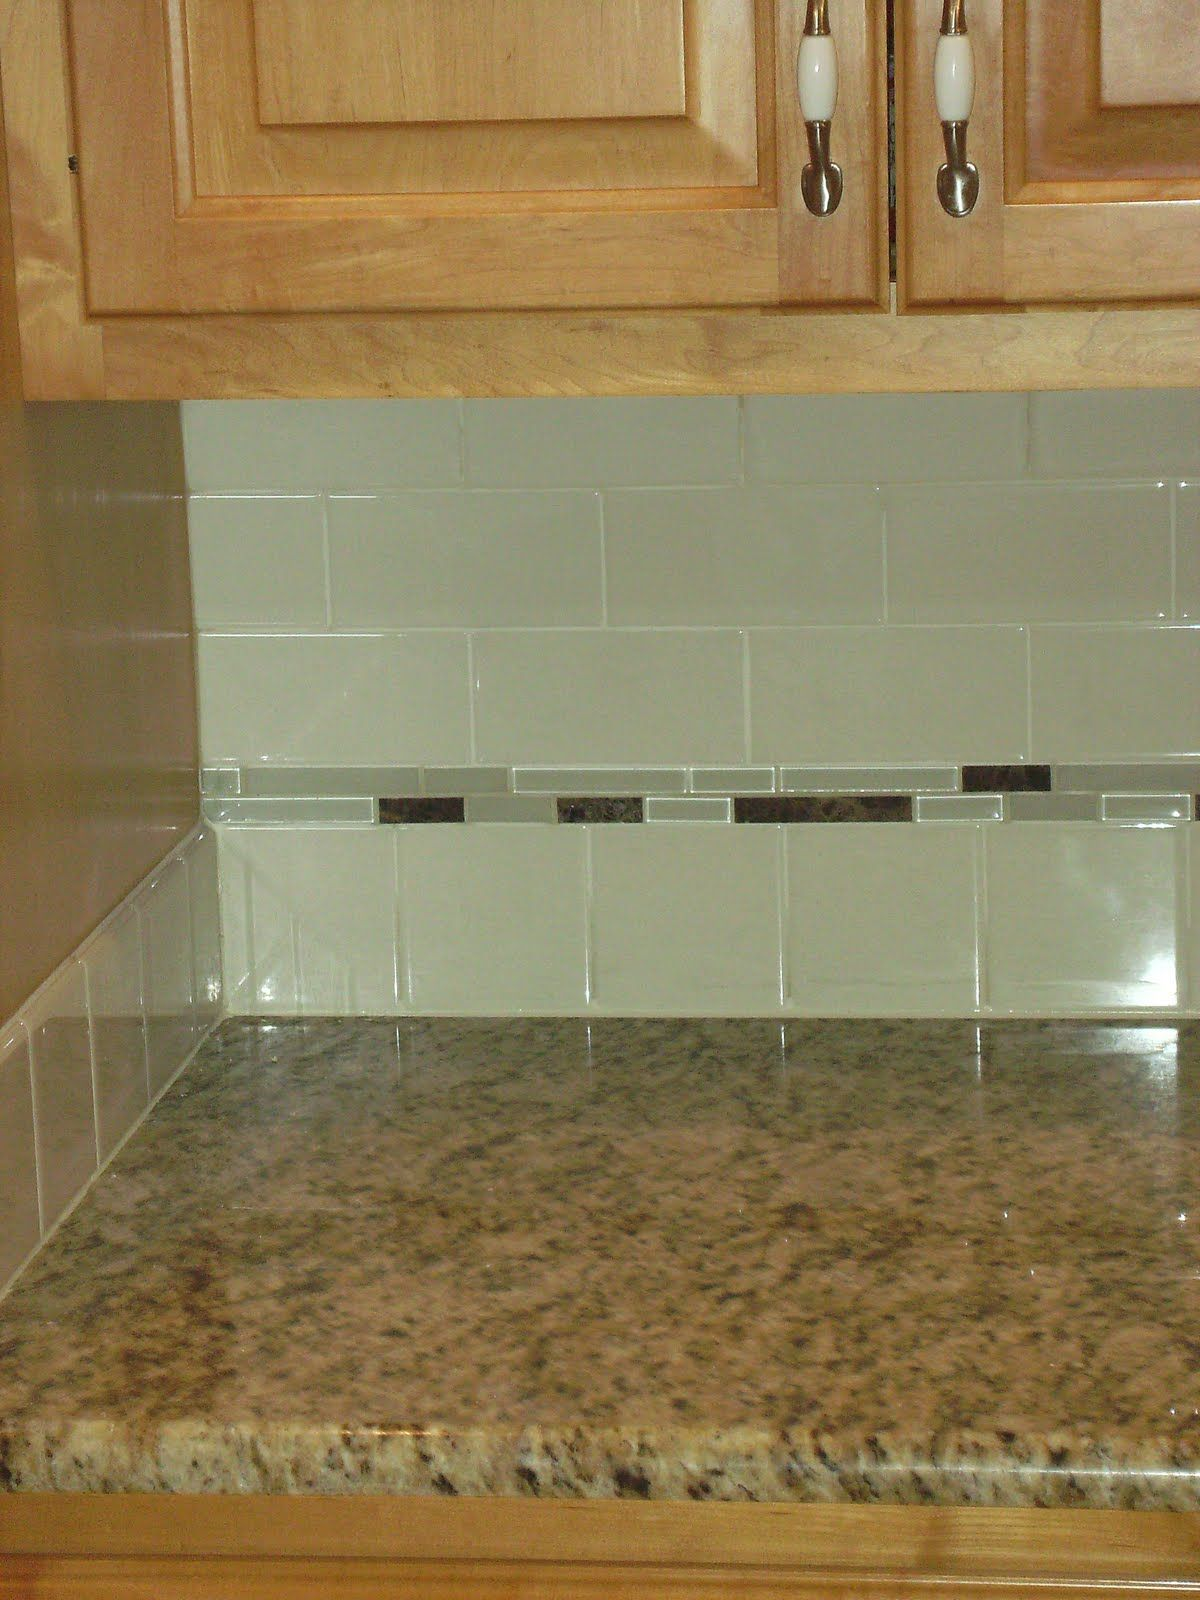 Kitchen Design Subway Tile Backsplash Green Glass Subway Tiles With Small Grey Glass Accent